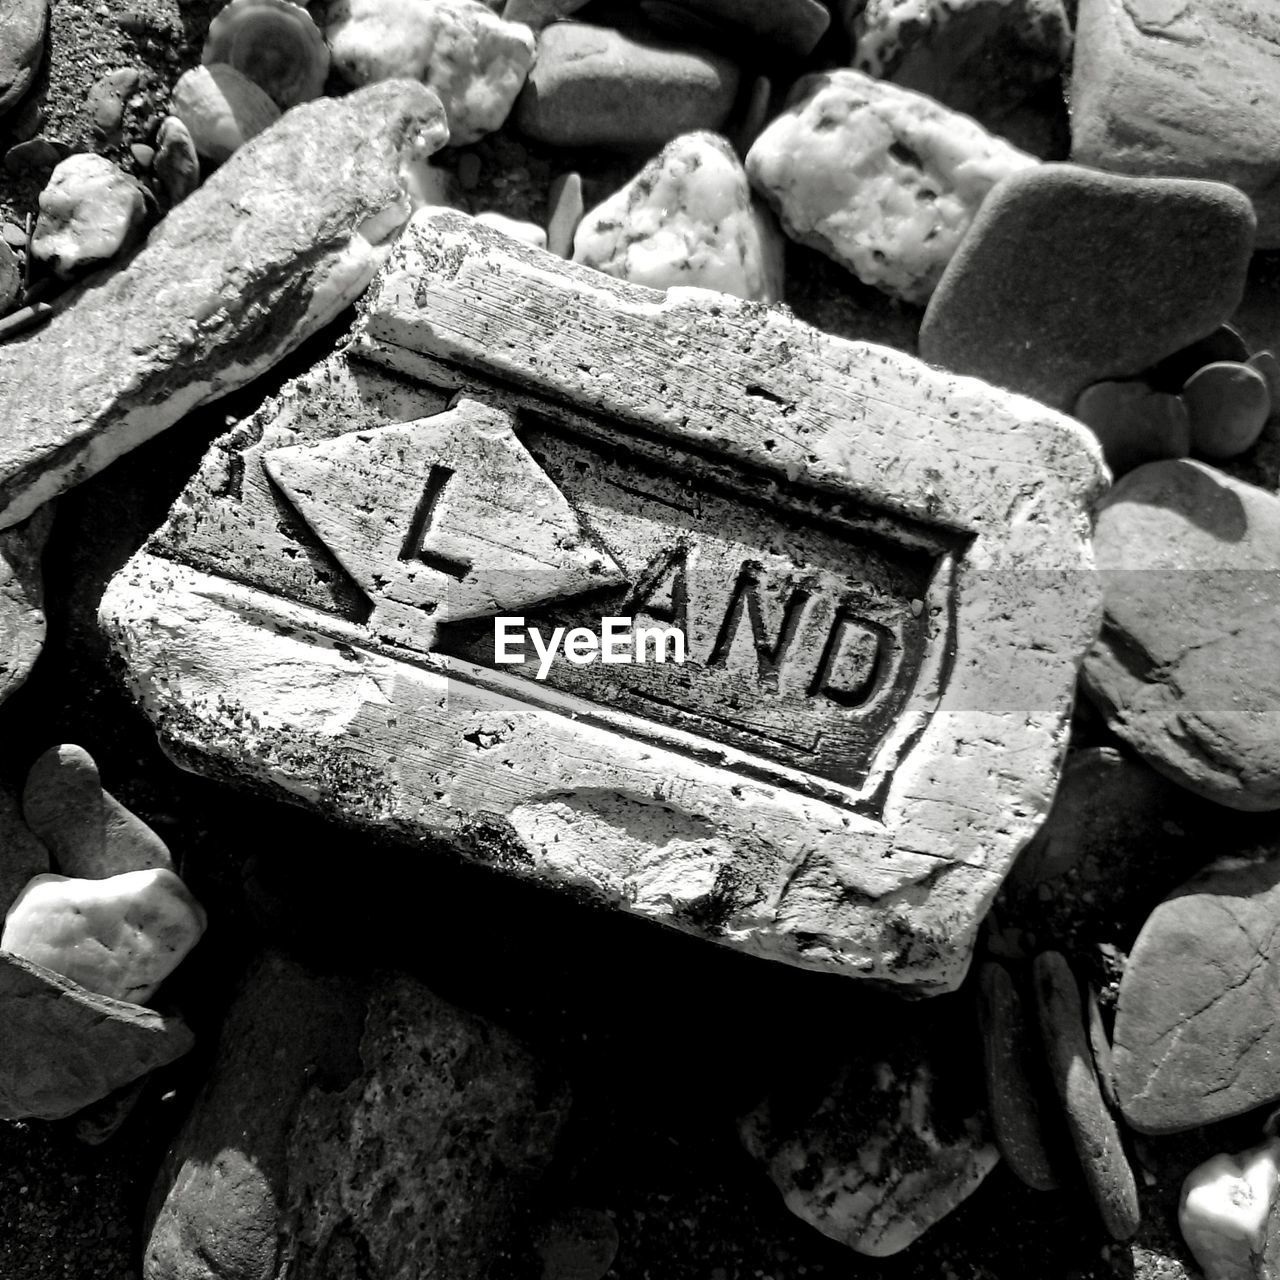 CLOSE-UP OF TEXT ON STONE